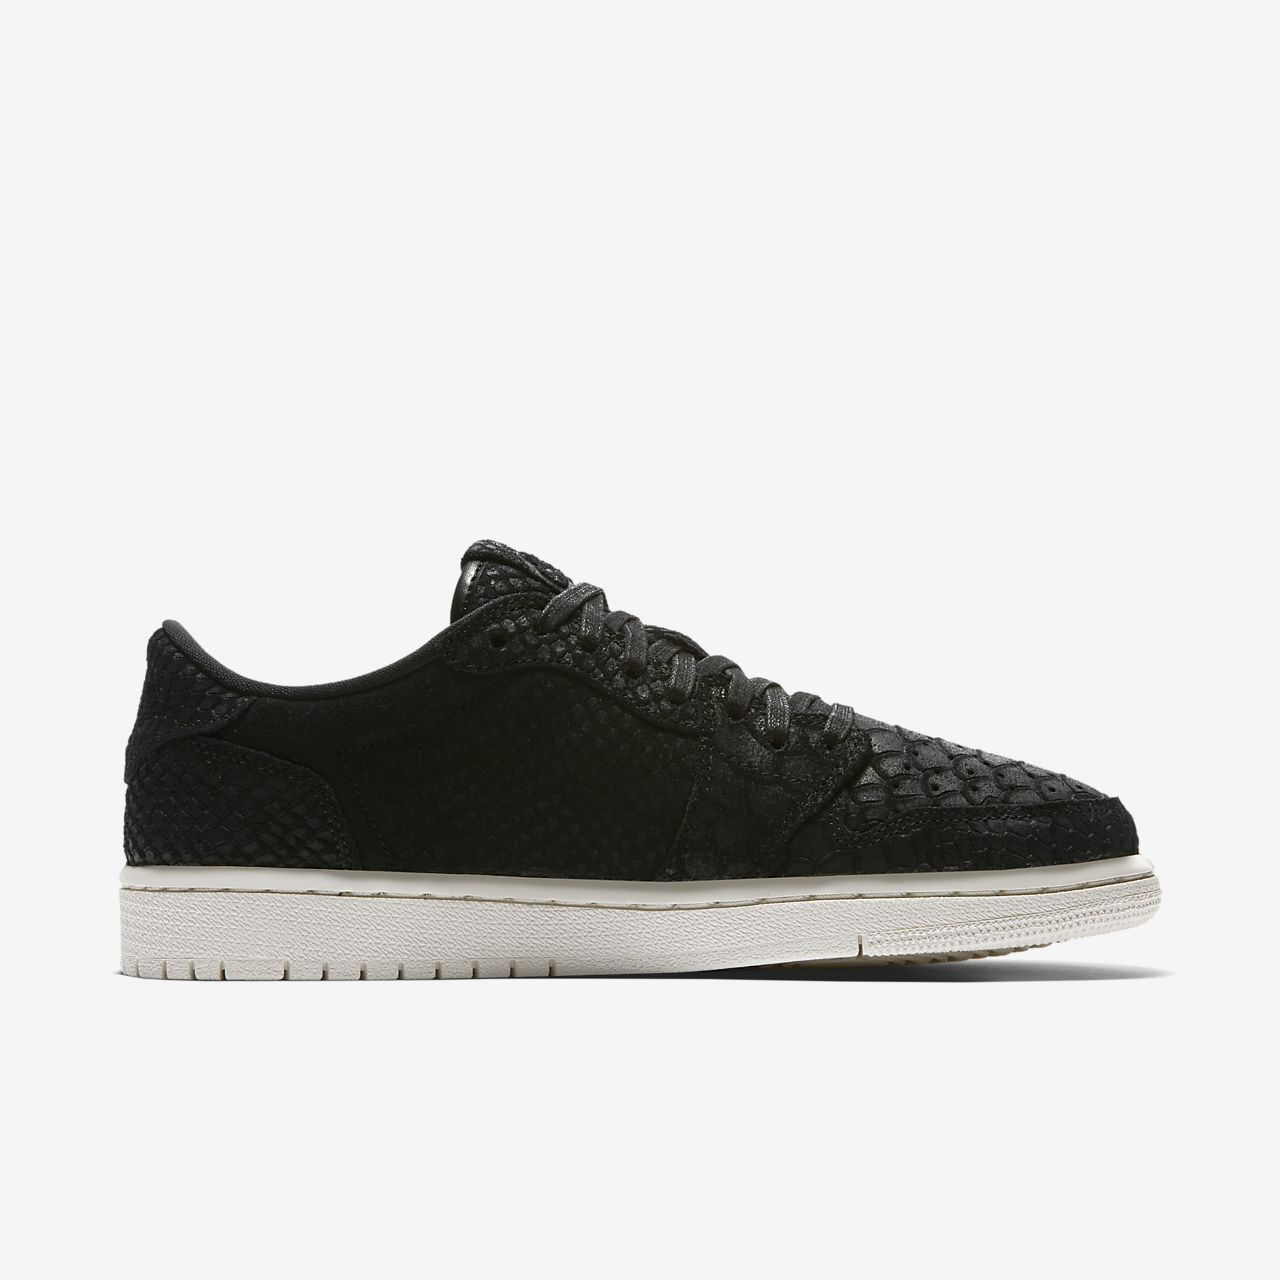 white air jordan 1 retro low nz